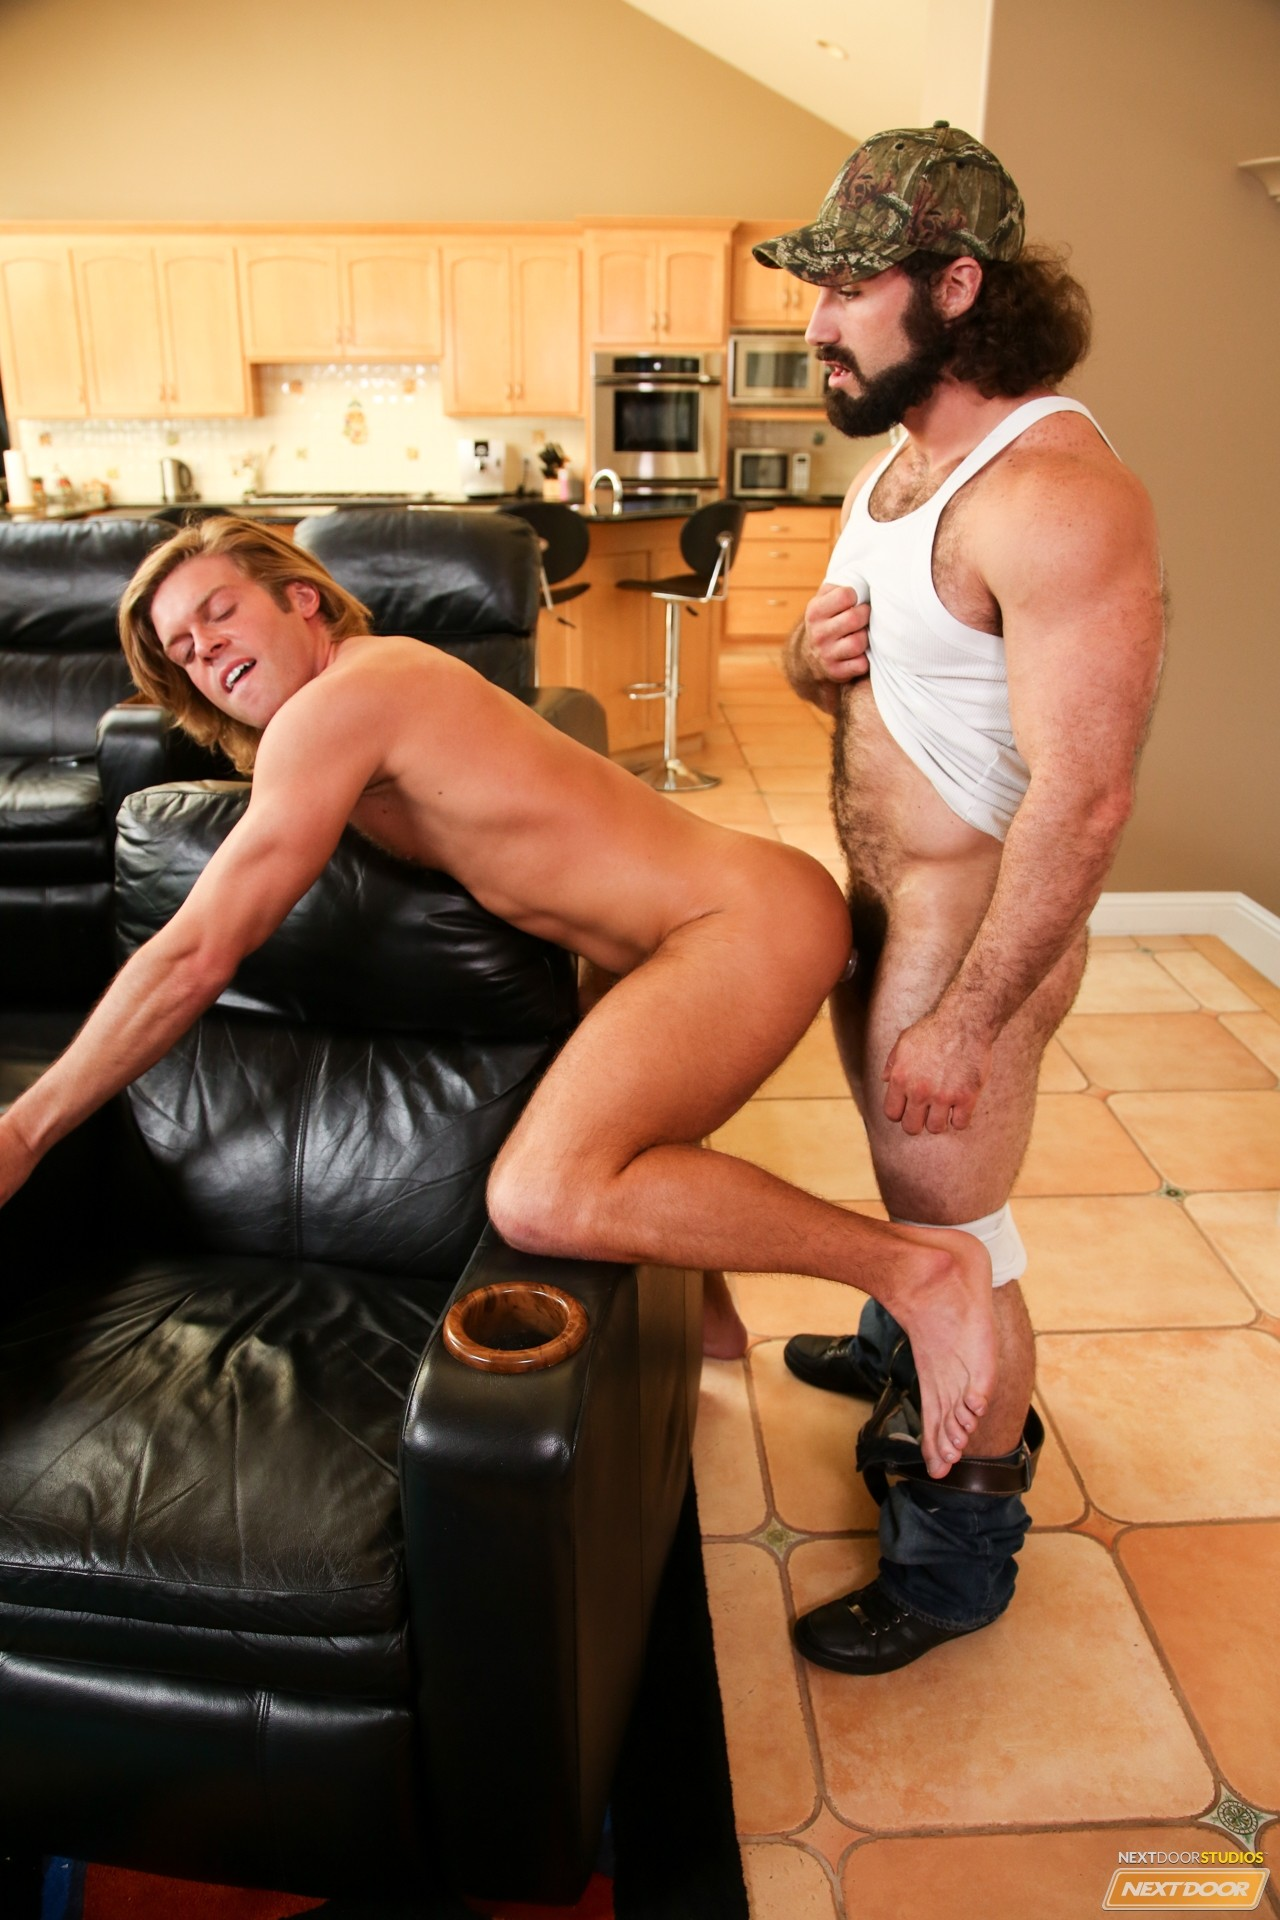 young boy complete blow job